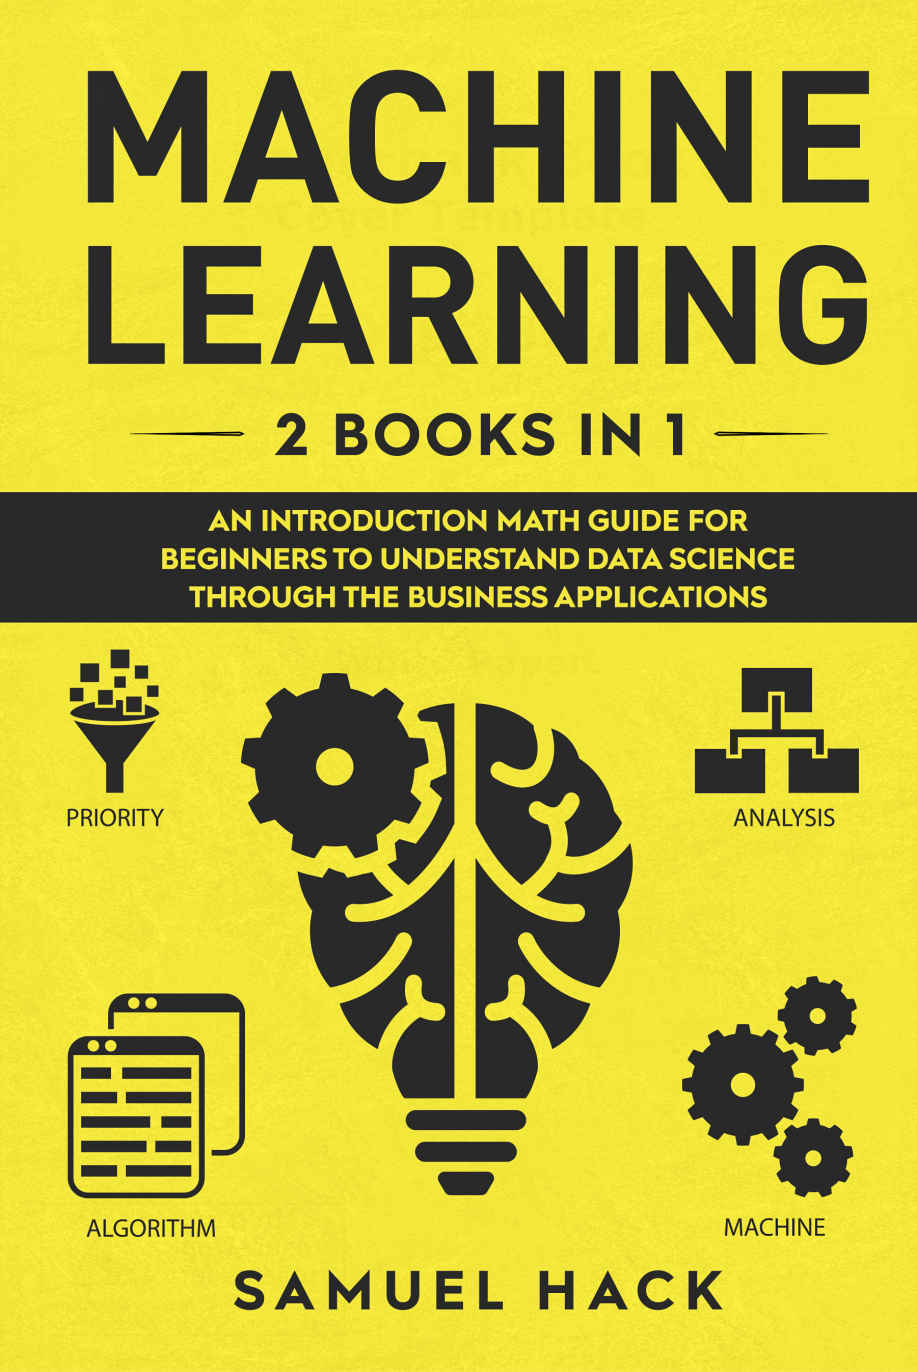 Machine Learning: An Introduction Math Guide for Beginners to Understand Data Science Through the Business Applications